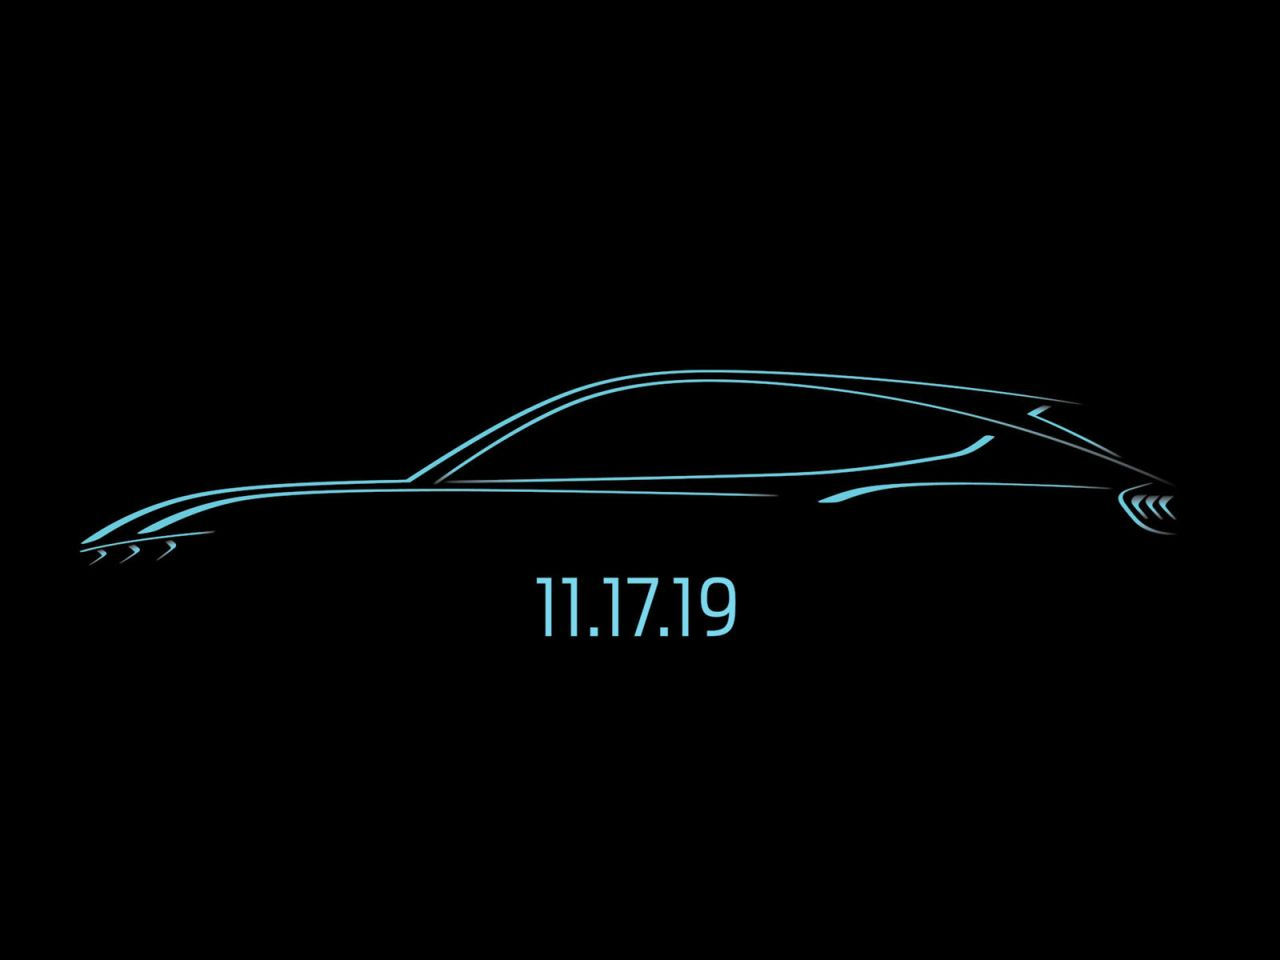 Ford Mustang Mach E Electric SUV Teaser